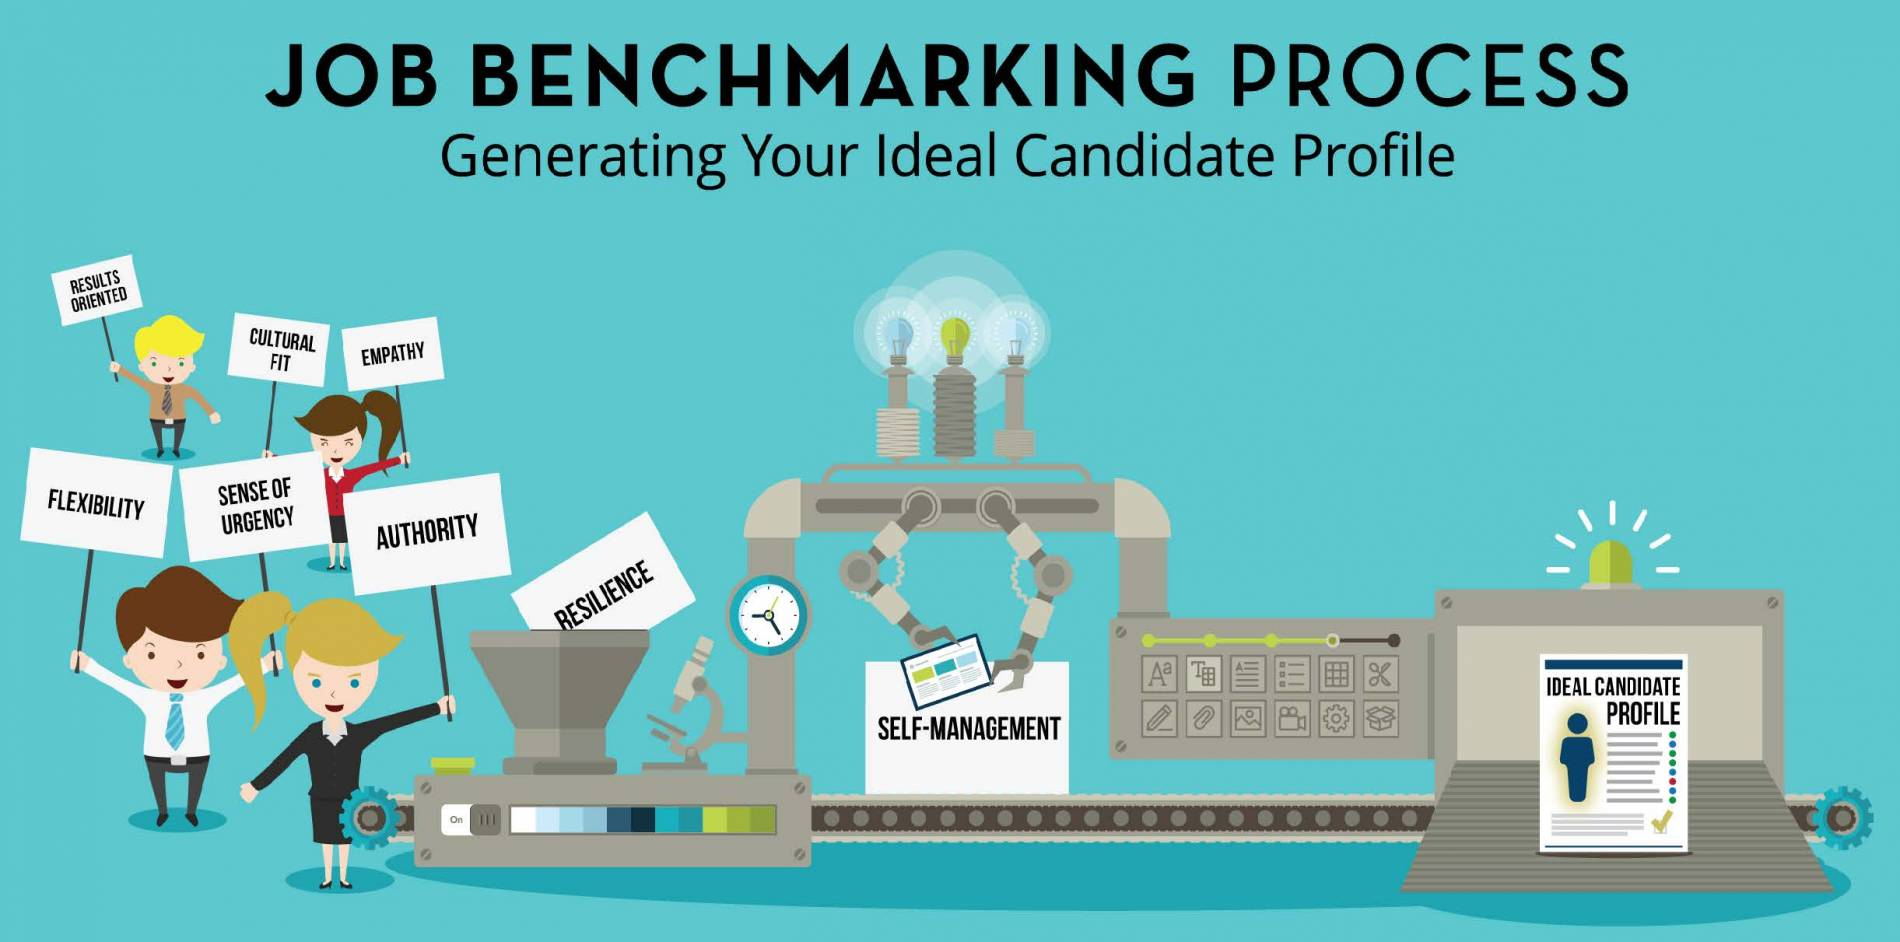 Job Benchmarking | The Brooks Group